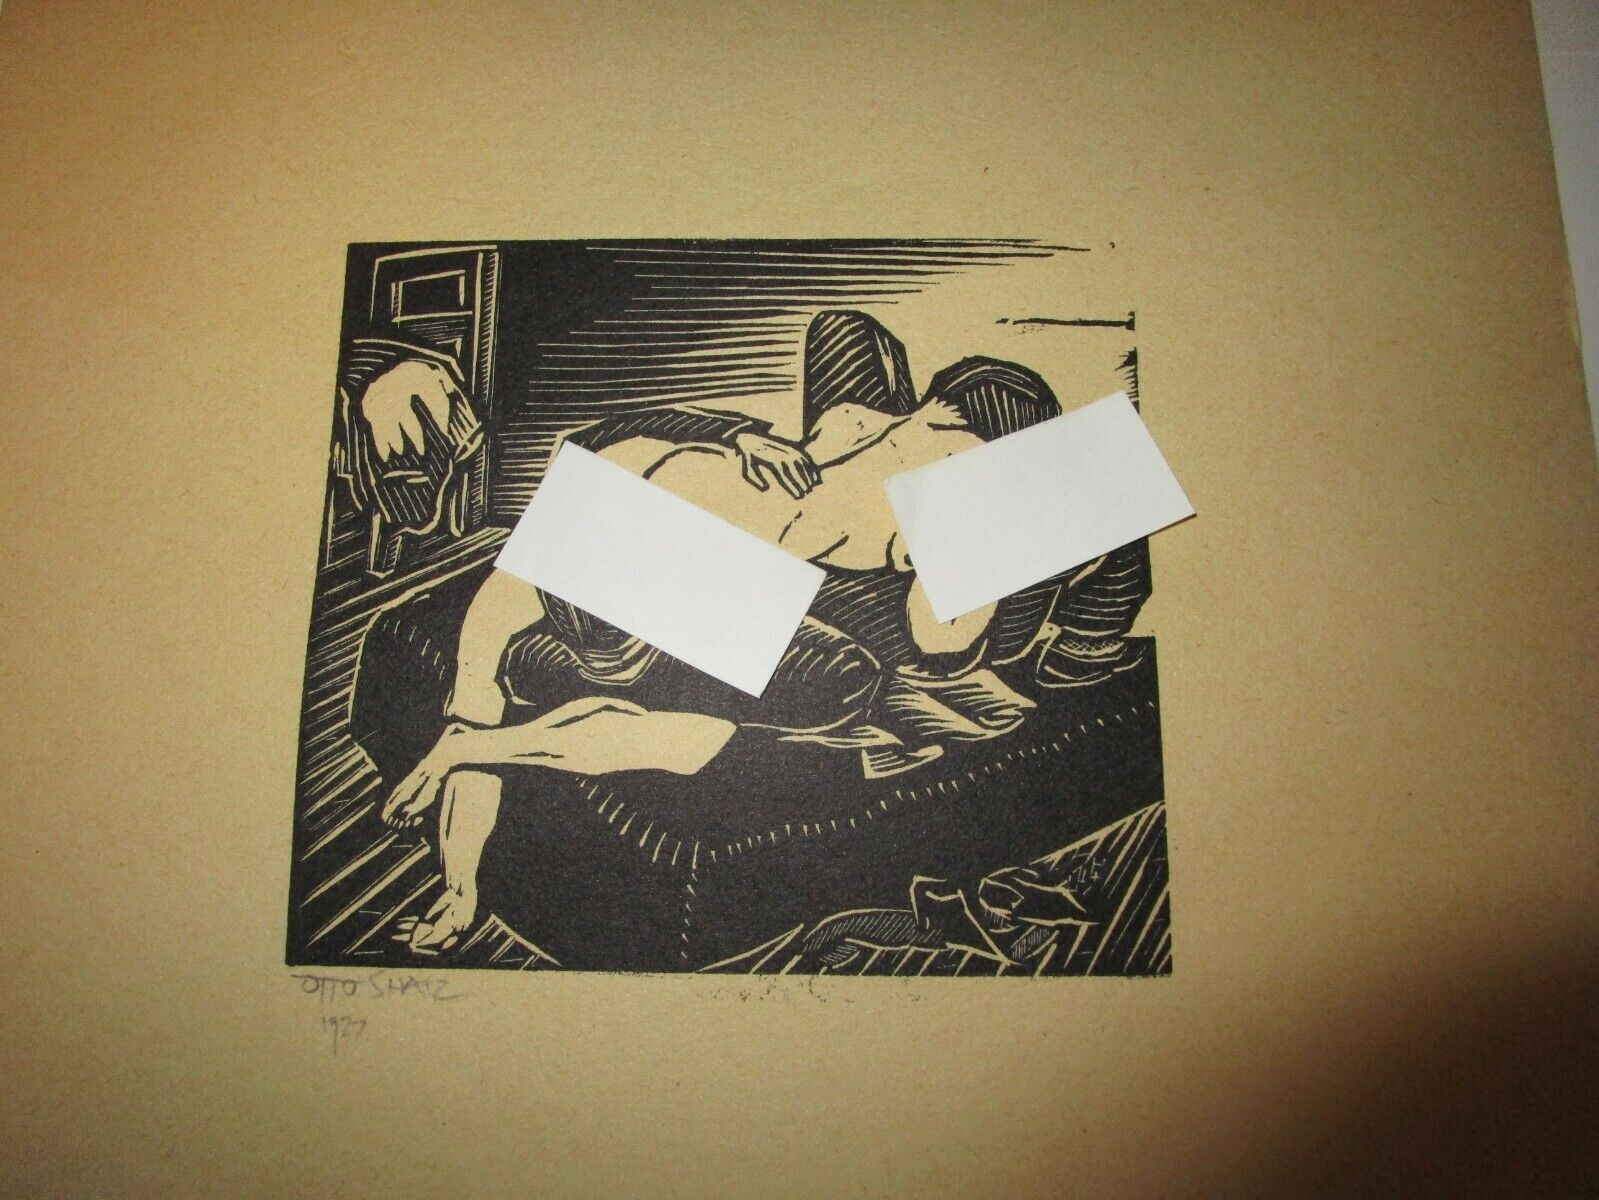 Otto Shatz Erotic Wood Block Prints - Set of 3 Без бренда